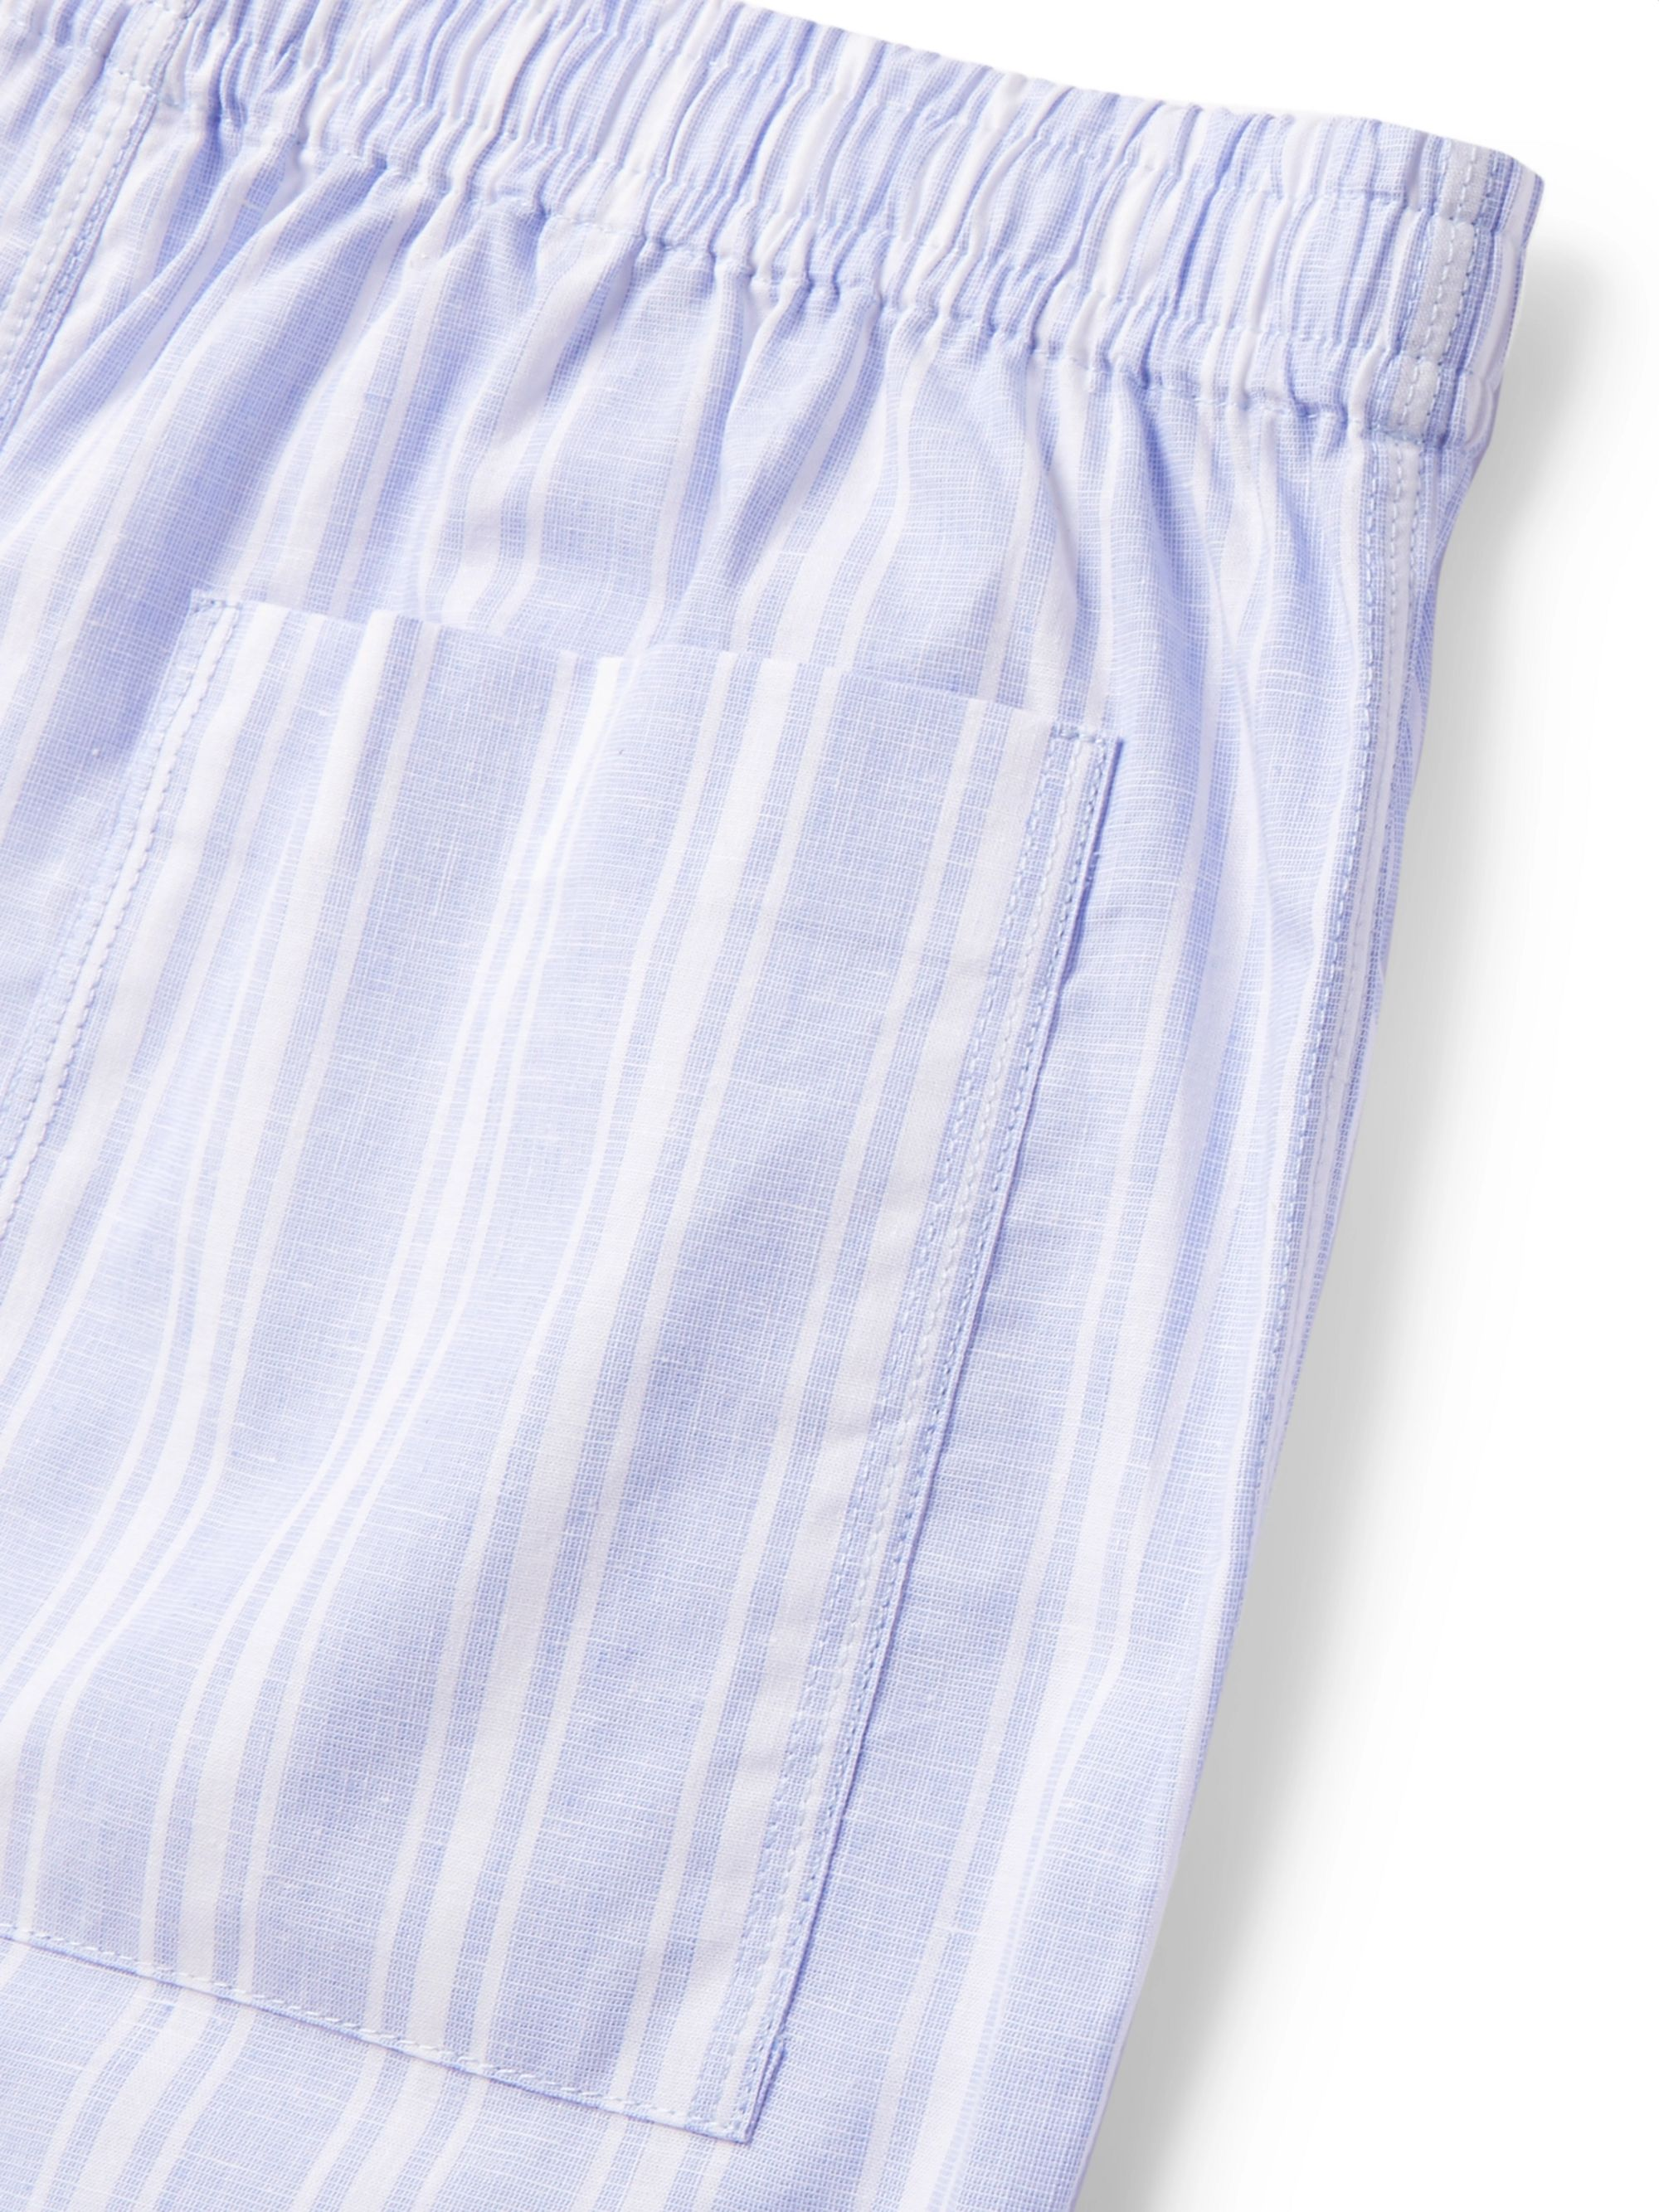 Hamilton and Hare Striped Cotton and Linen-Blend Pyjama Shorts